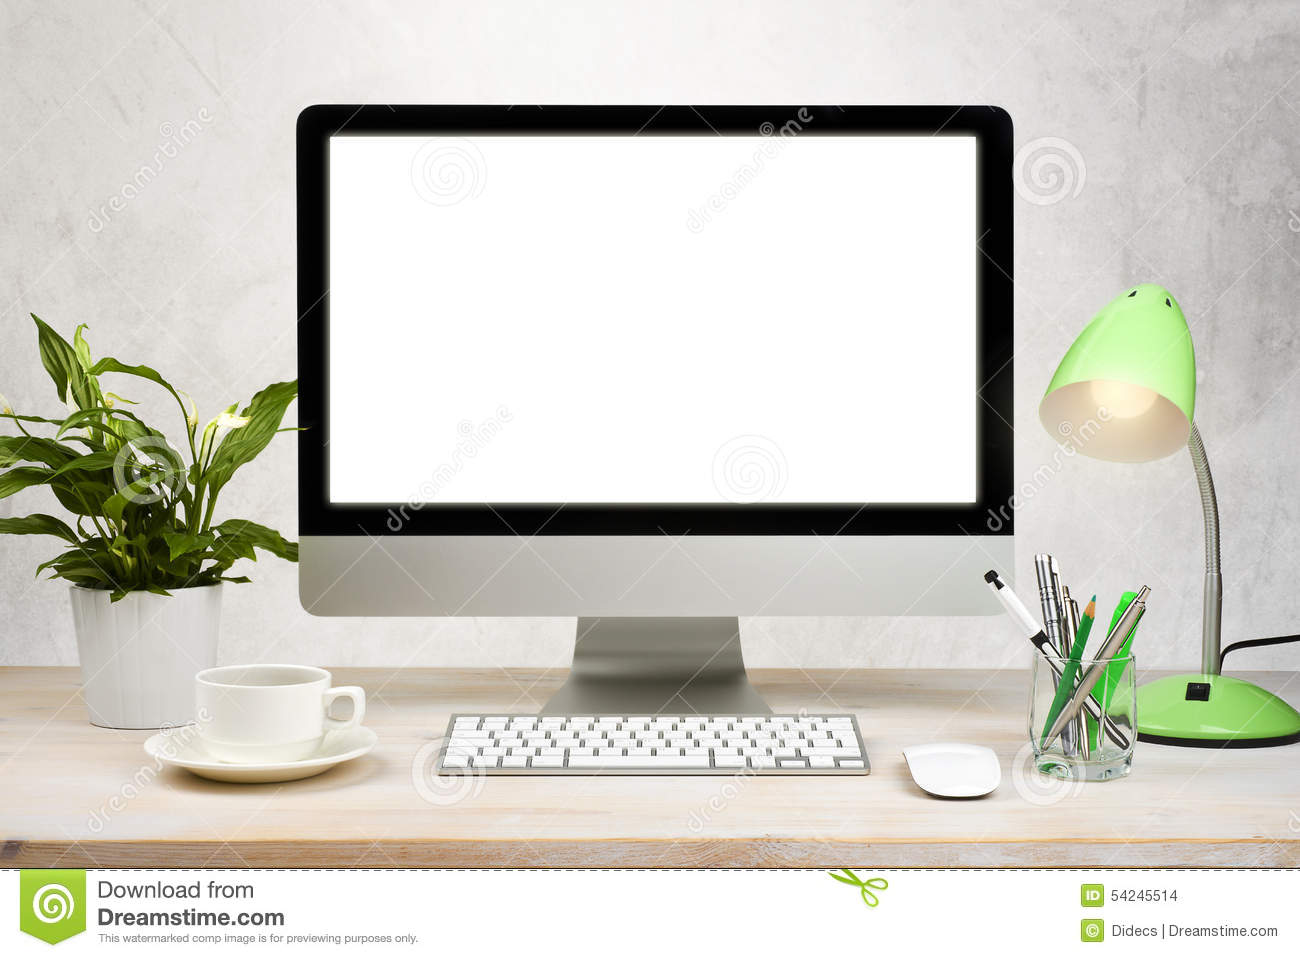 Workspace background with desktop pc and office accessories on table